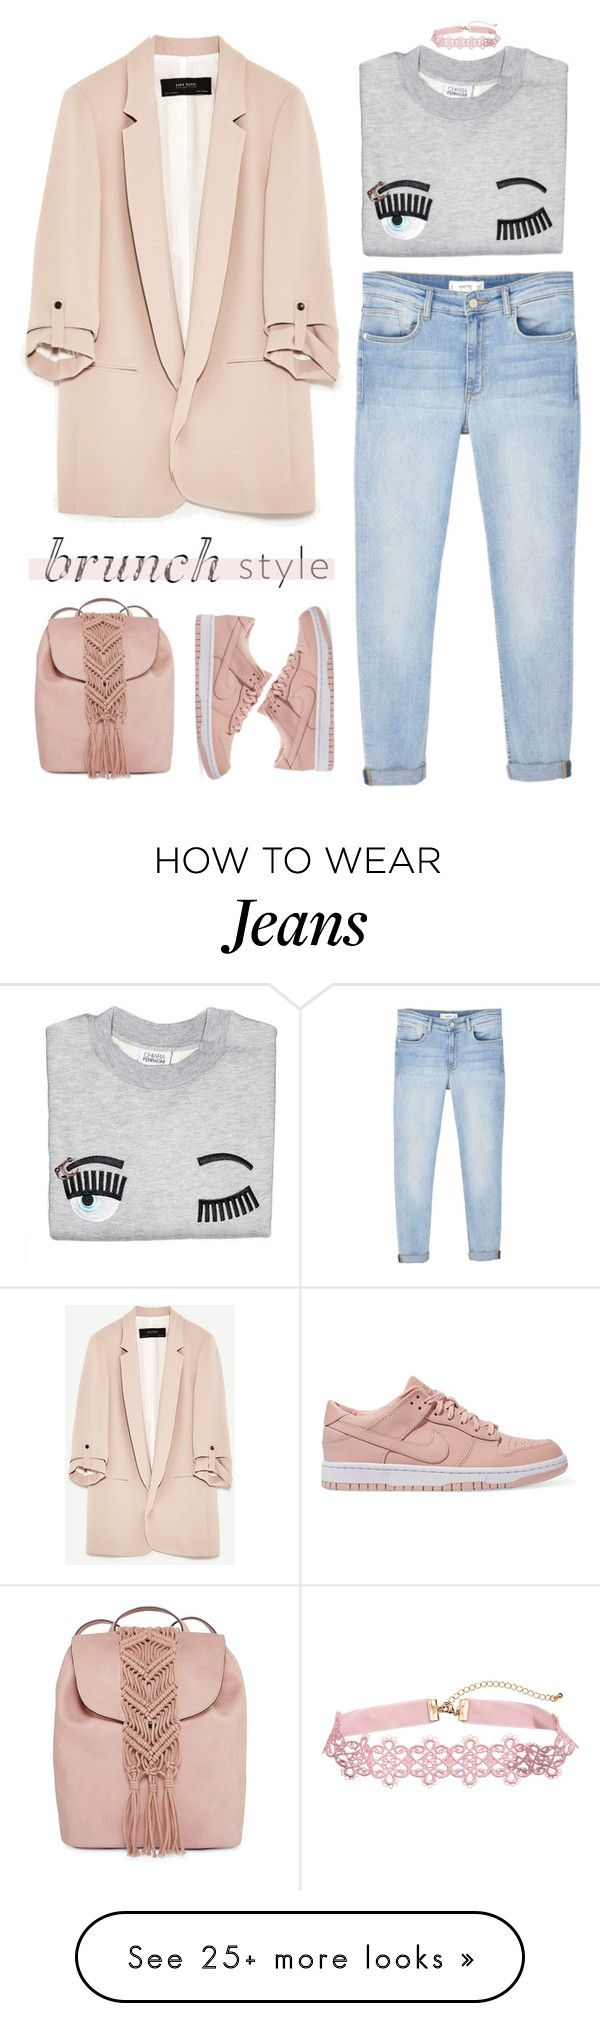 """""""cheap can be chic"""" by timeak on Polyvore featuring MANGO, NIKE and T-shirt & Jeans"""